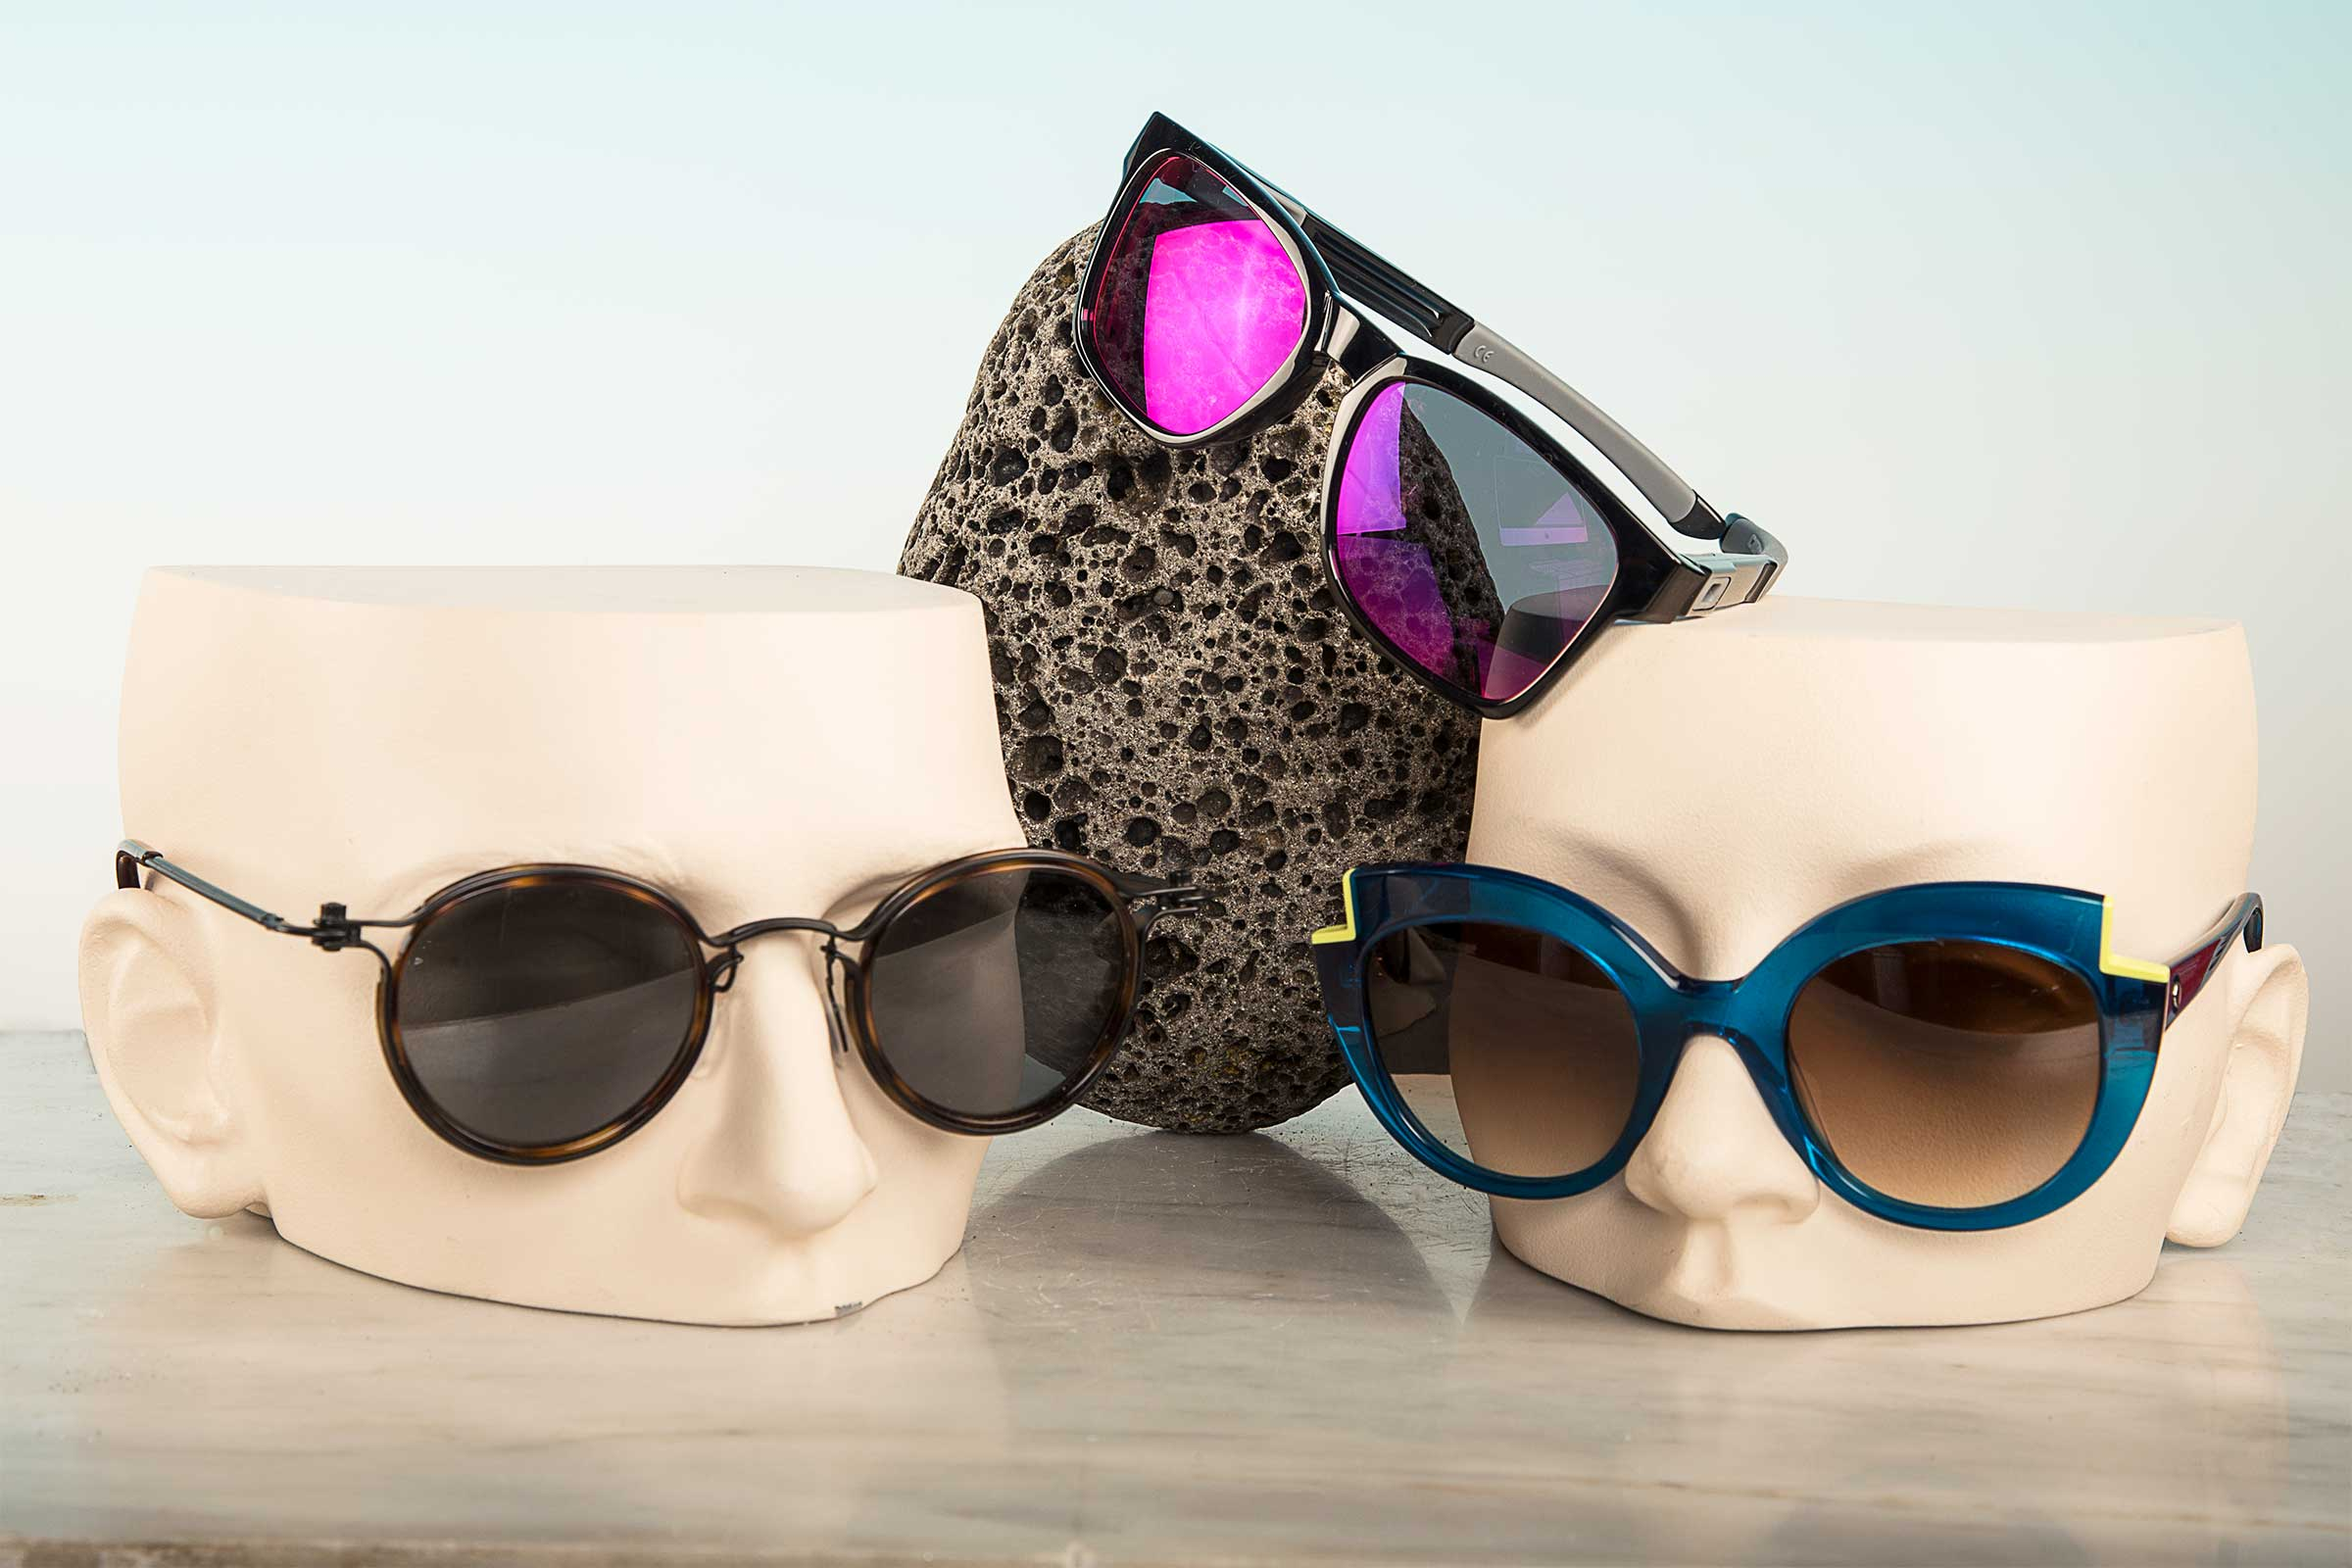 On-Trend Eyewear: Fashion Statement or UV Damage?